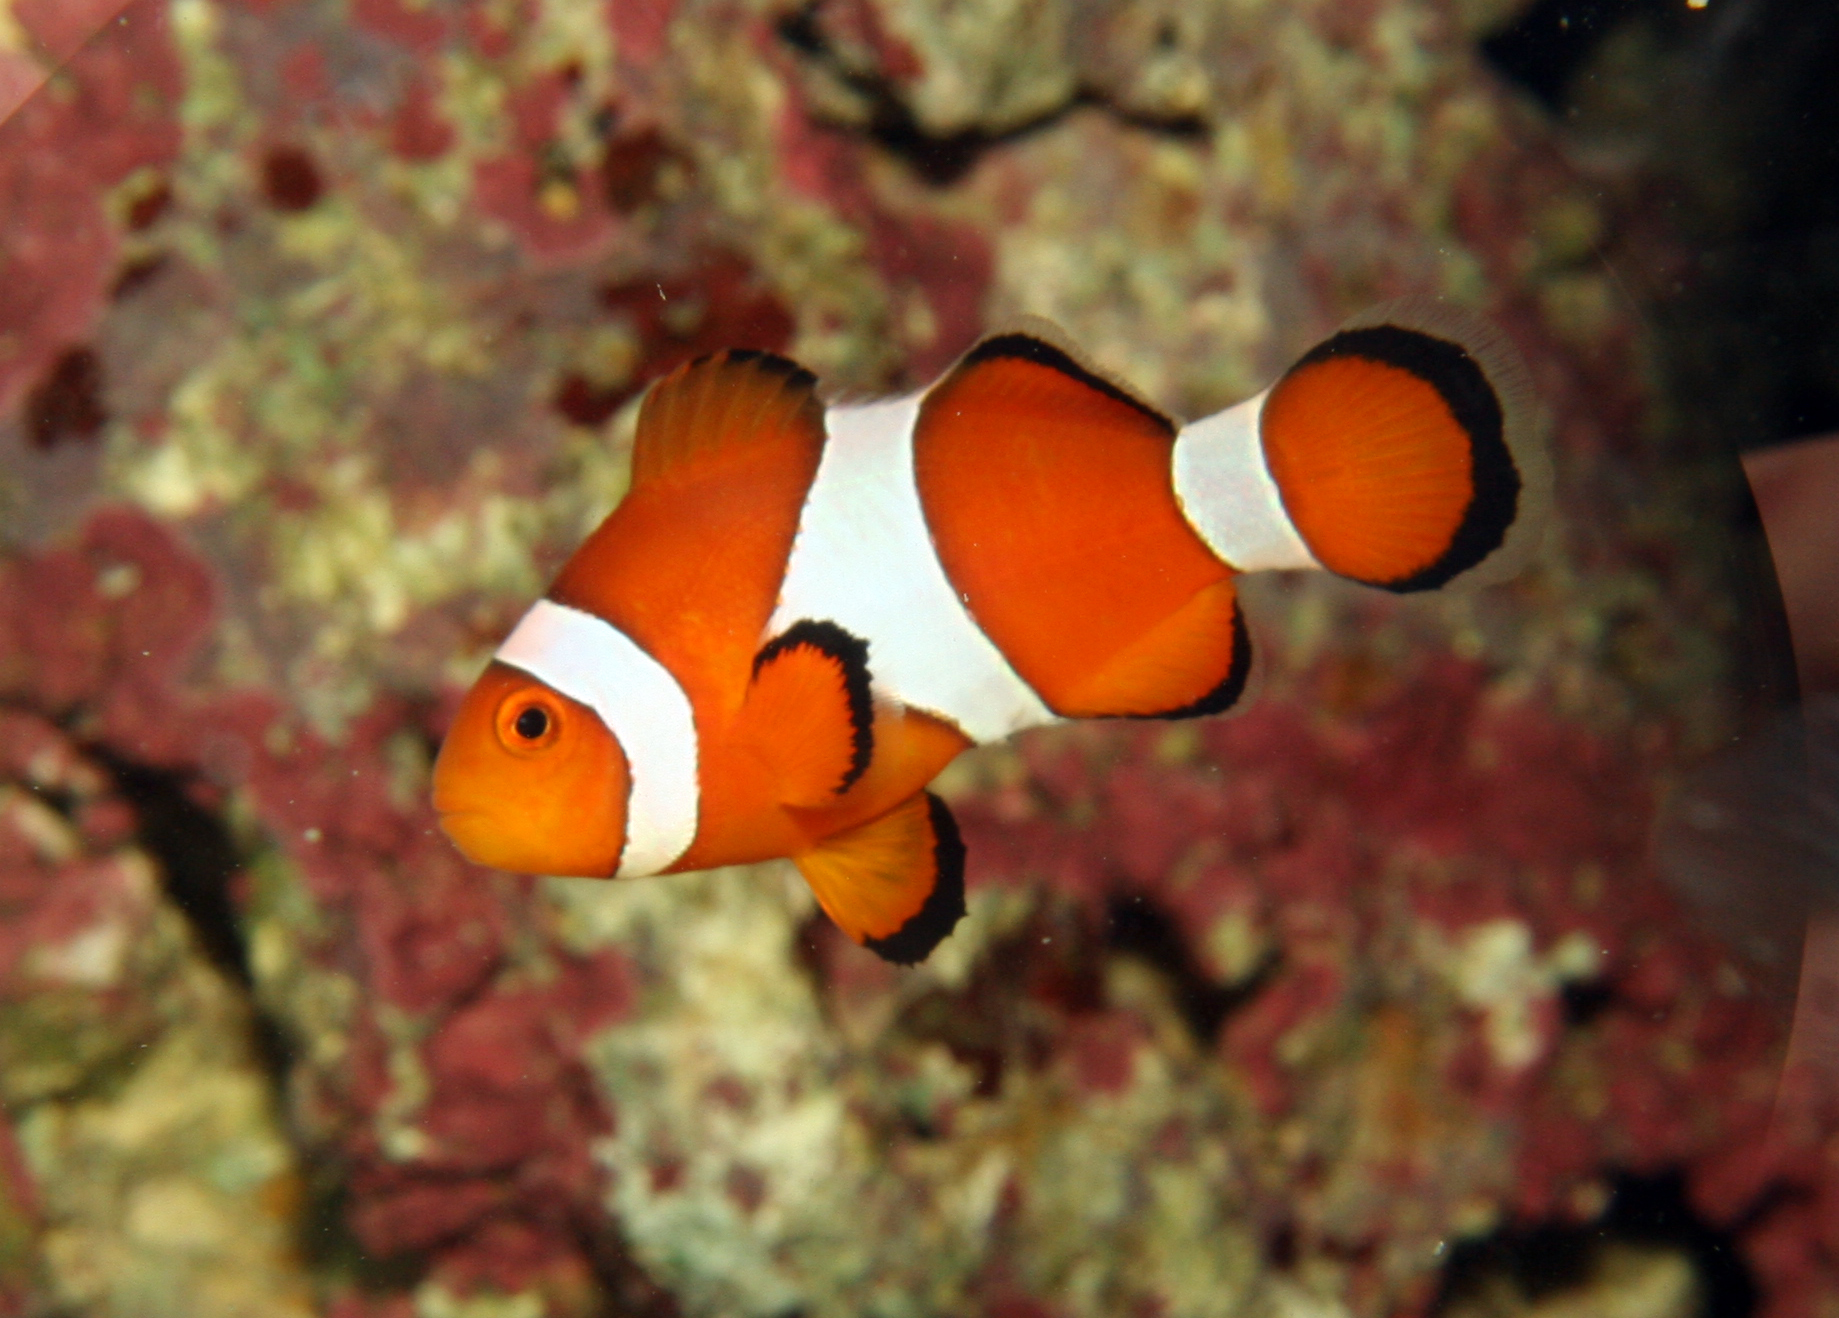 Amphiprion ocellaris (false percula clownfish), Aquarium 1.jpg - Amphiprion ocellaris (false percula clownfish)